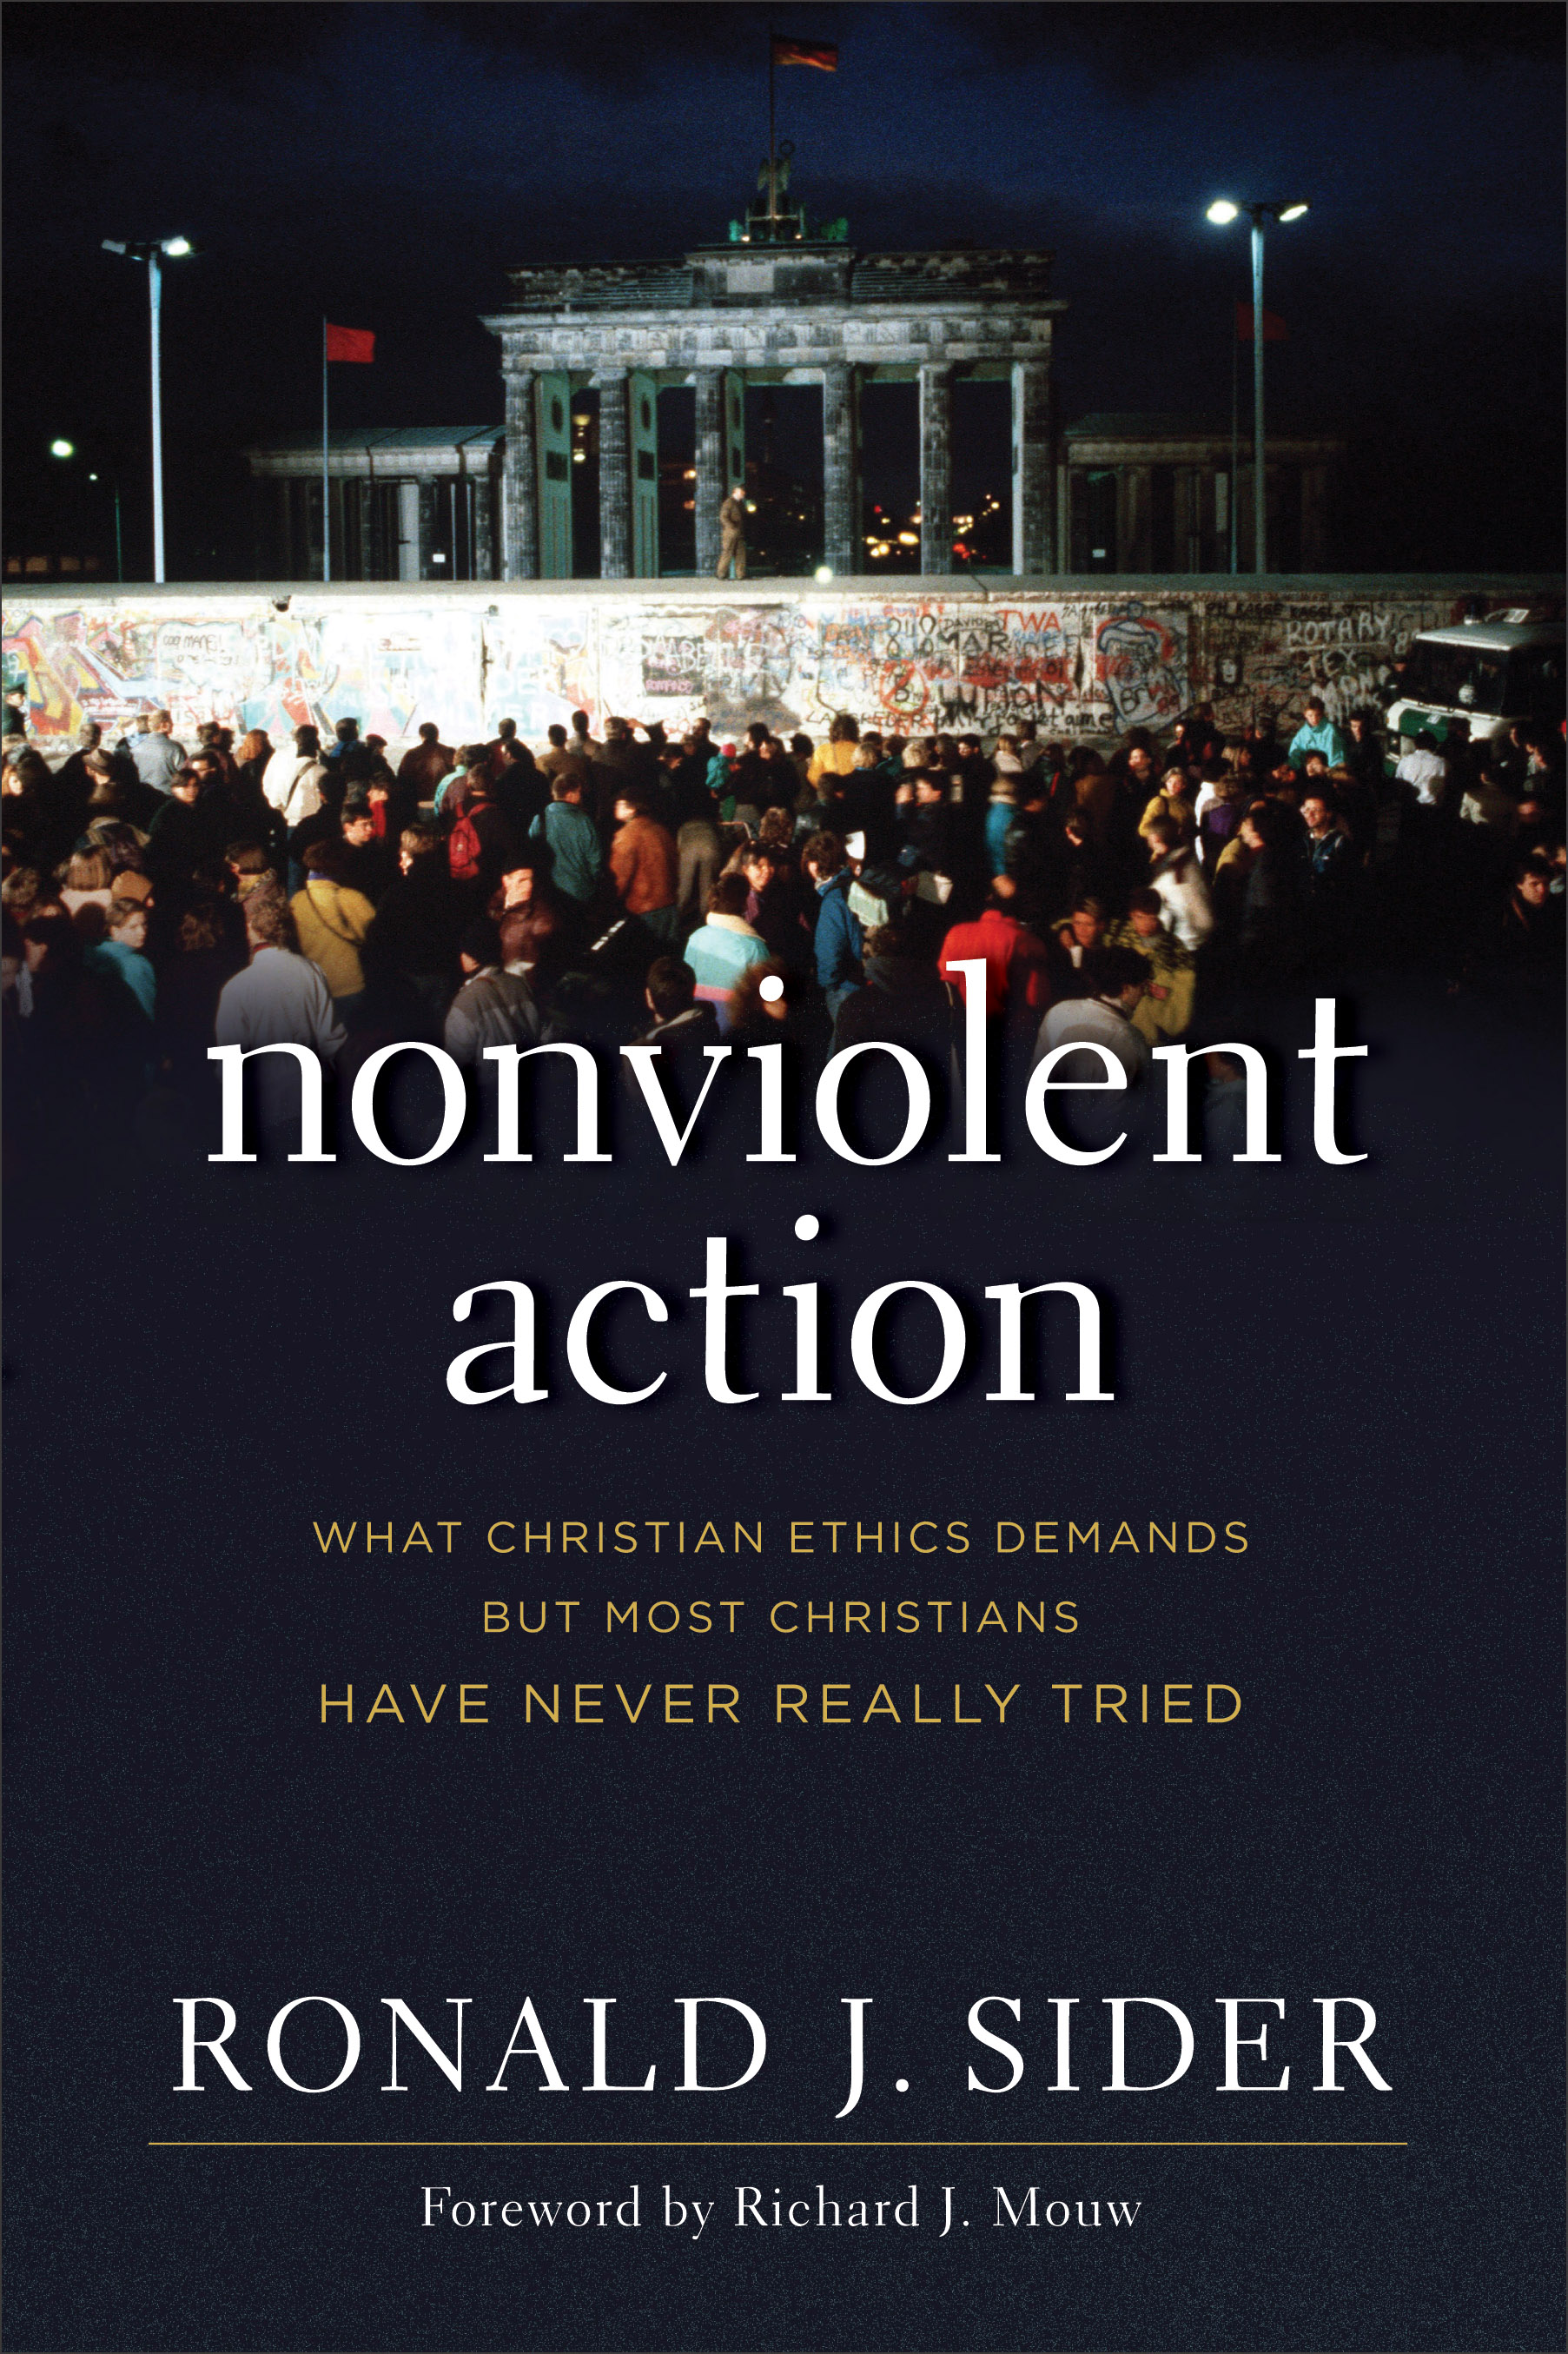 pacifism nonviolence and br The true way of discipleship in the face of violence is neither pacifism nor violence, but rather militant nonviolence jesus showed us the way, and walter wink does an excellent job of bringing these biblical teachings fully to light.